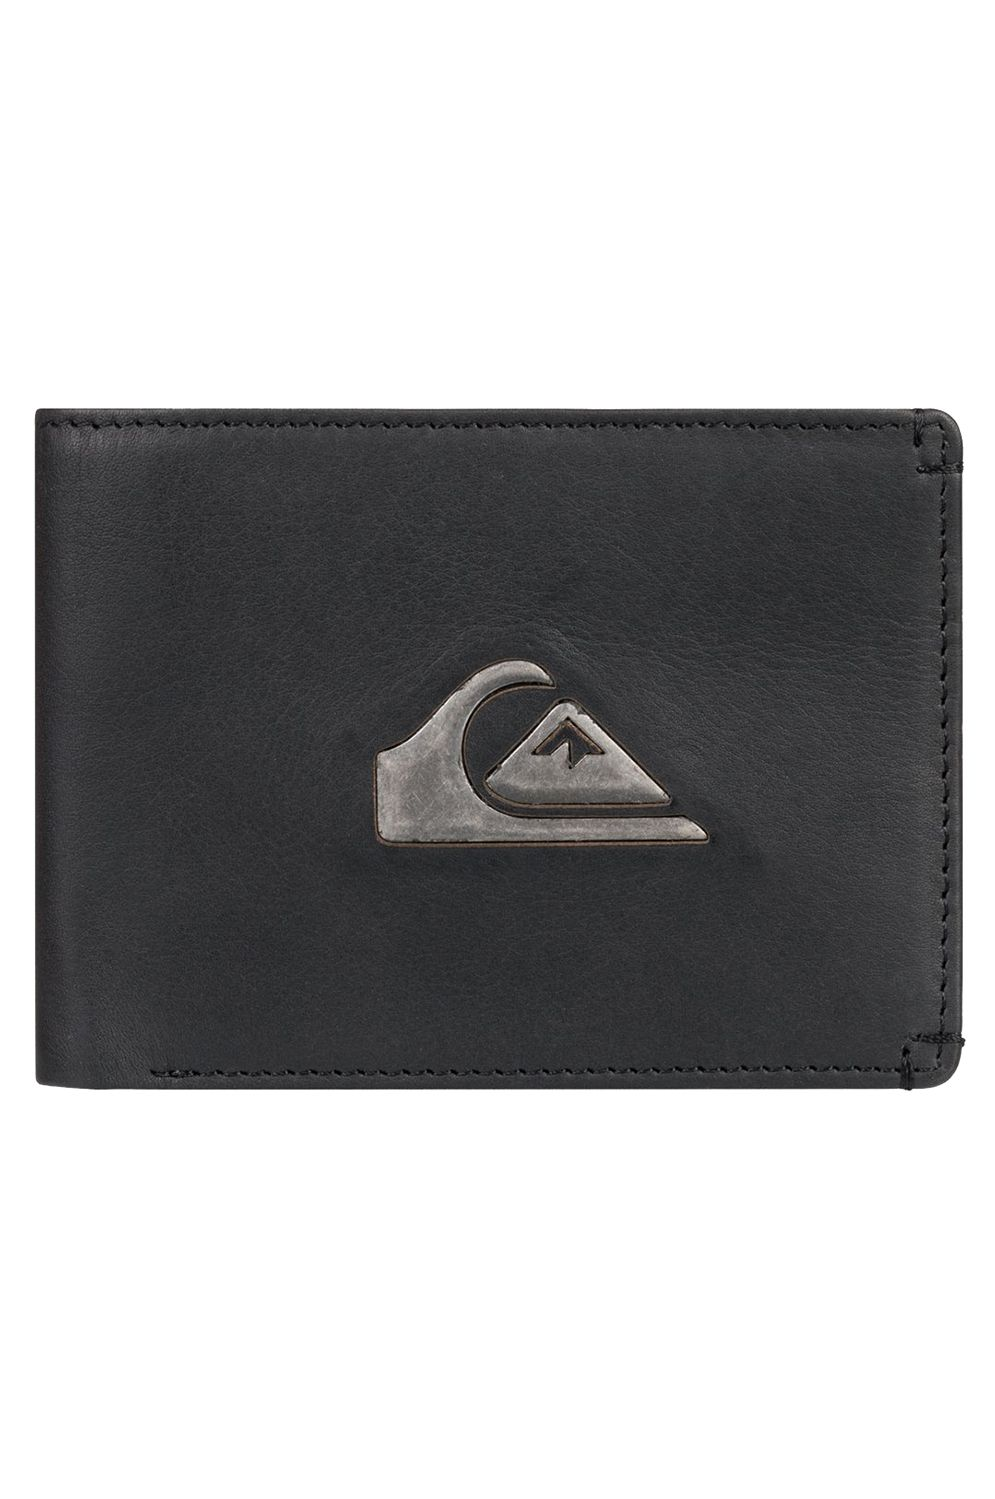 Quiksilver Leather Wallet NEW MISS DOLLAR Black